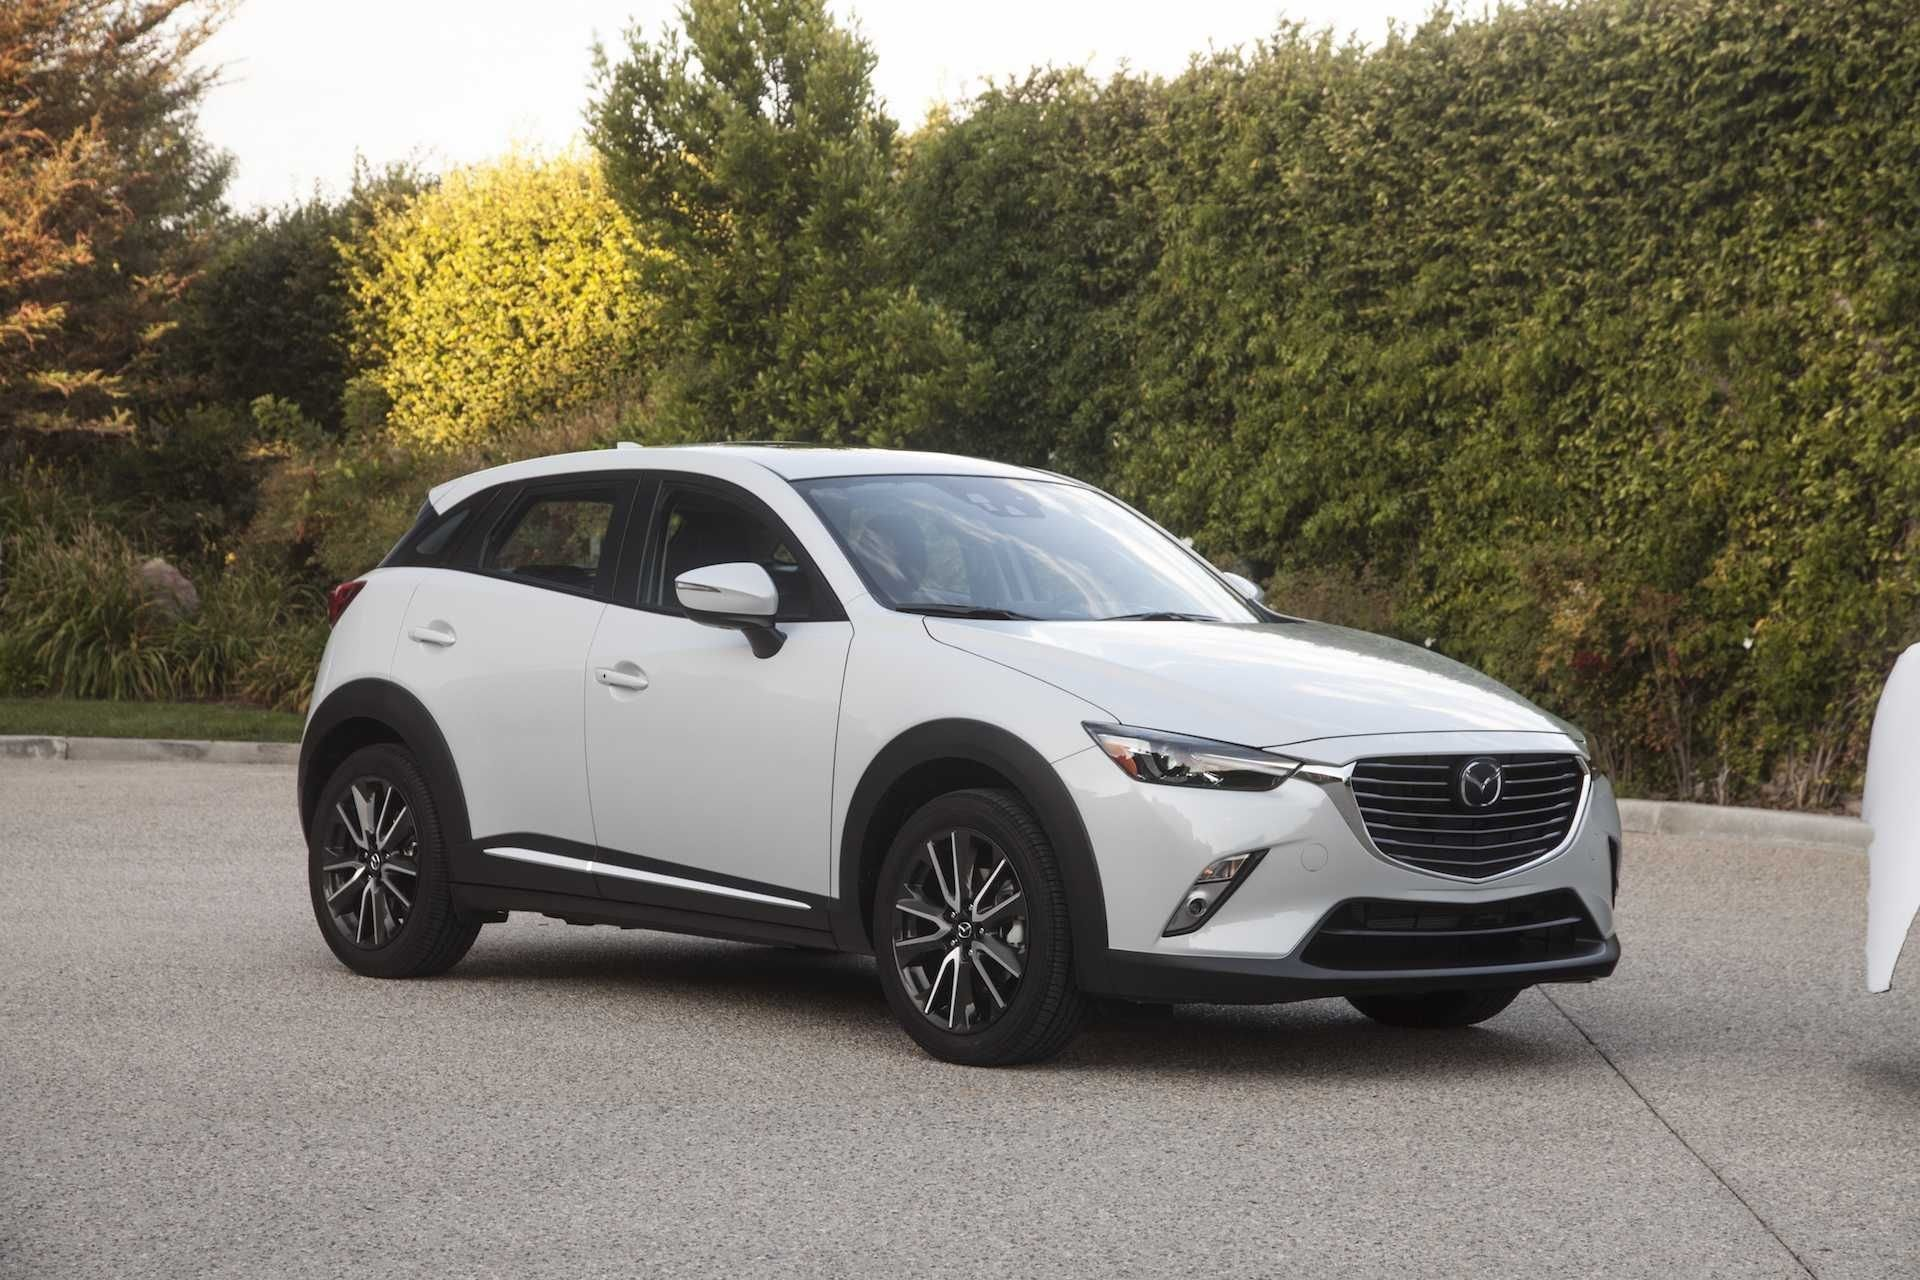 New 2019 Mazda-CX-3 Sport CX-3 Sport for sale $21,790 at M and V Leasing in Brooklyn NY 11223 1